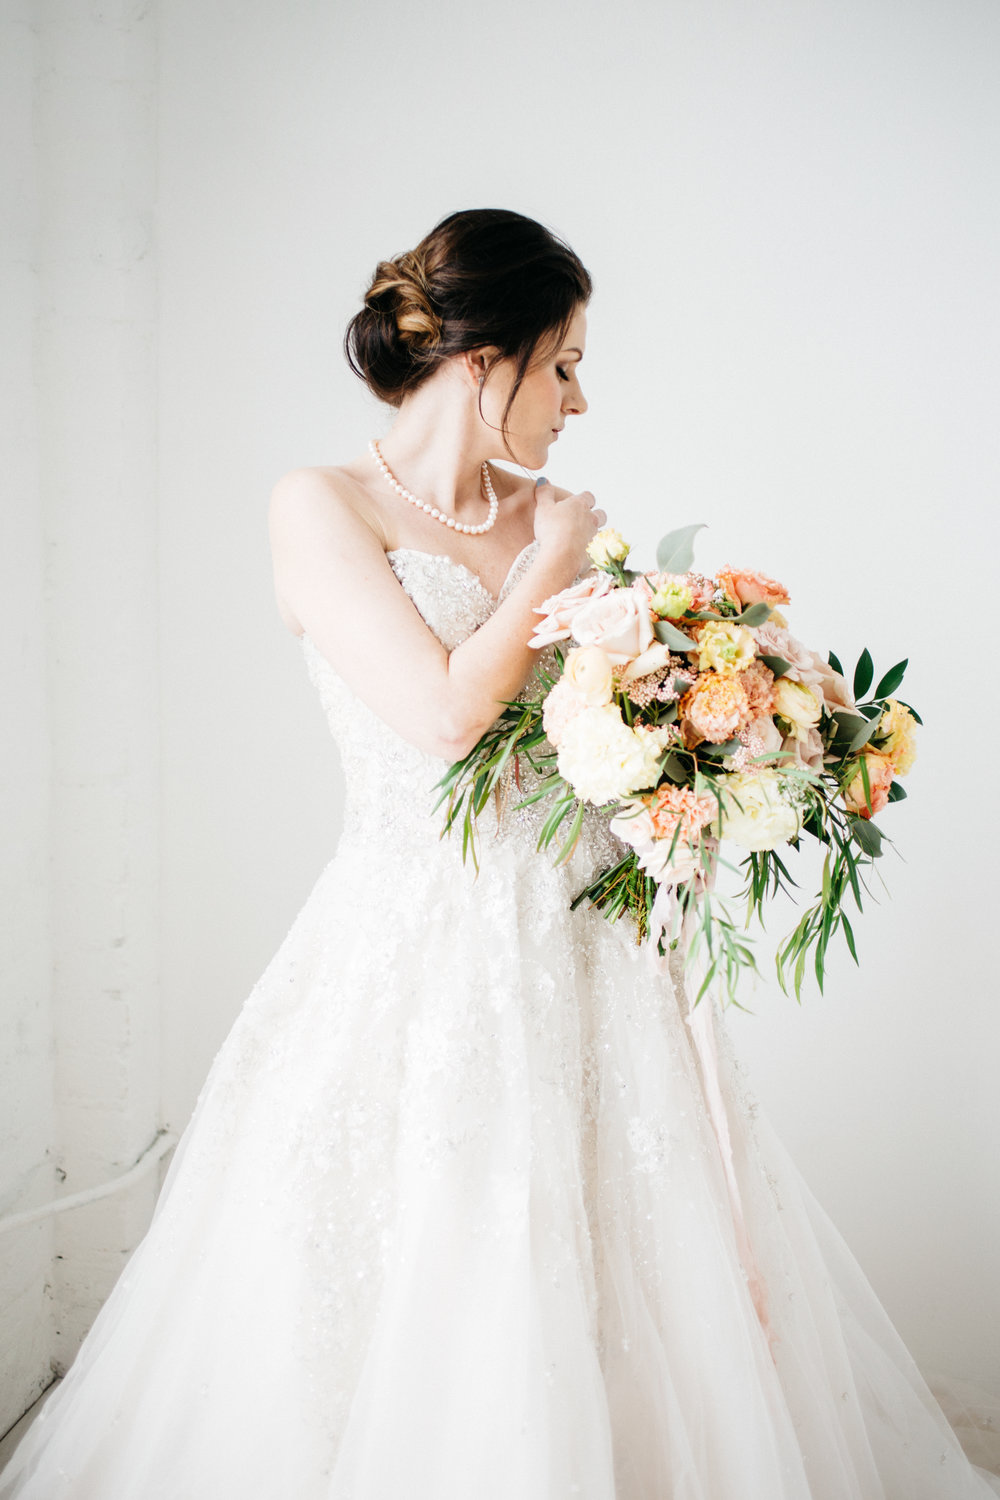 lauren belle jewelry | kate mcleod studio florals